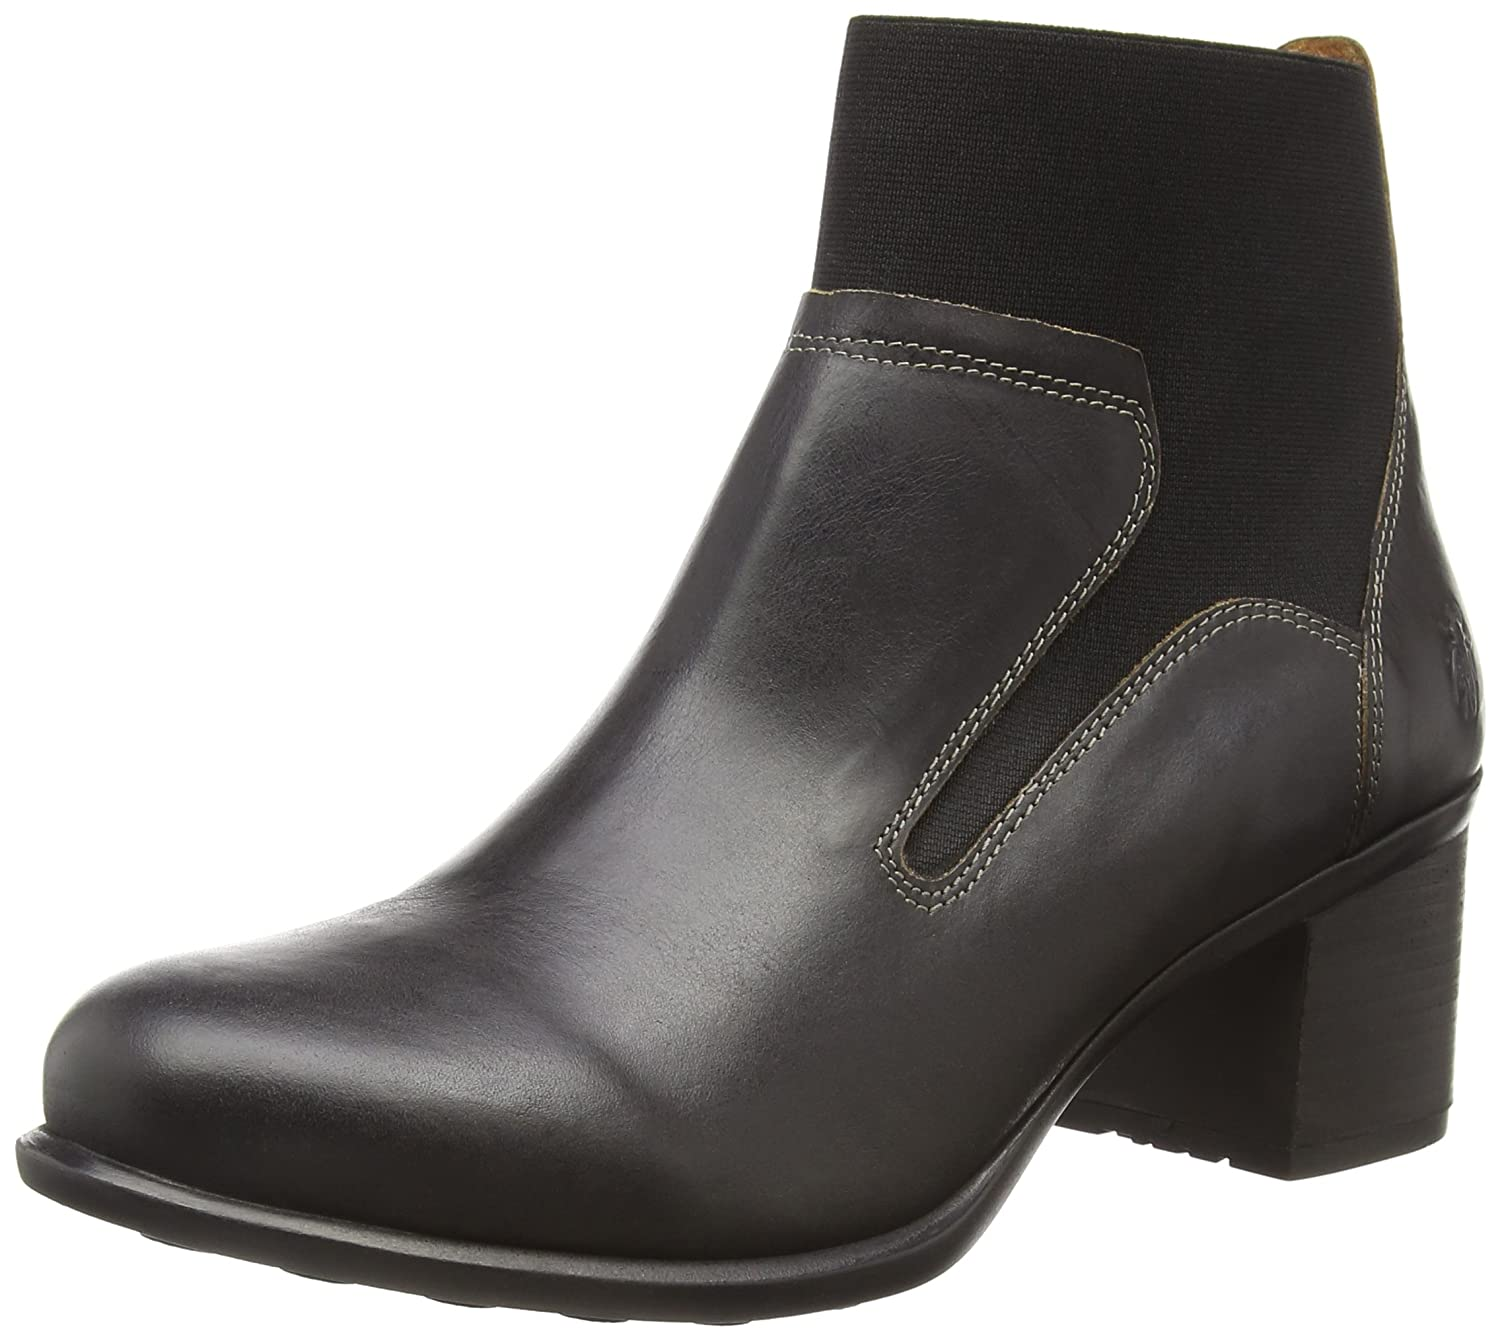 Fly London Damen Damen Damen Ilam327fly Kurzschaft Stiefel e9de5b